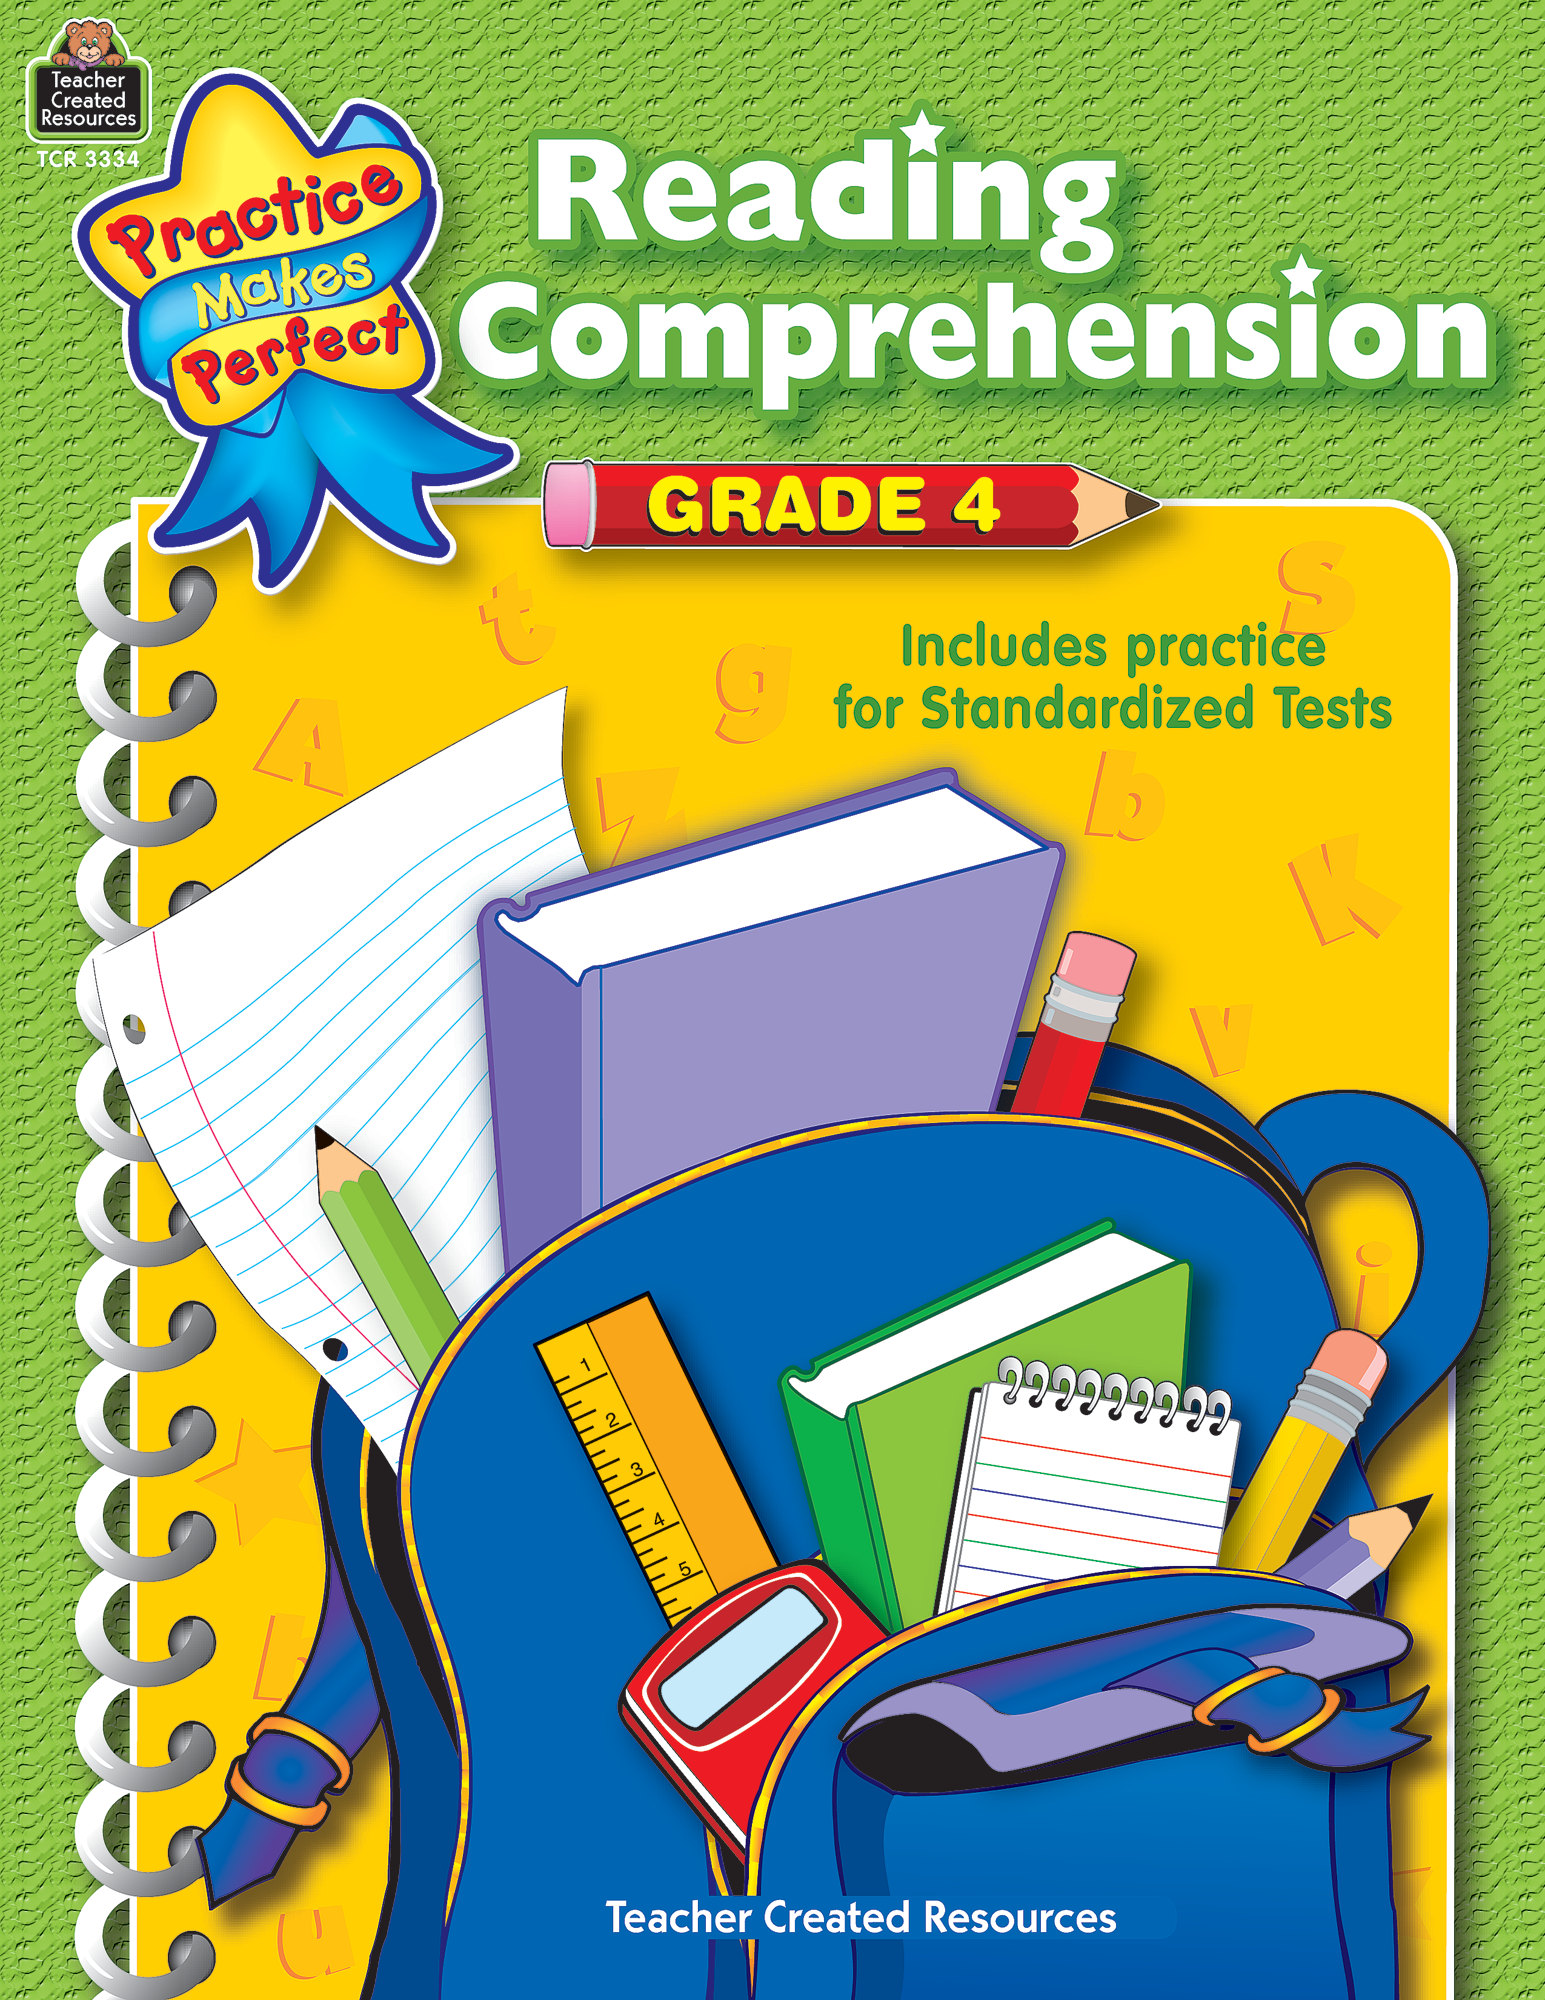 - Reading Comprehension Grade 4 - TCR3334 Teacher Created Resources